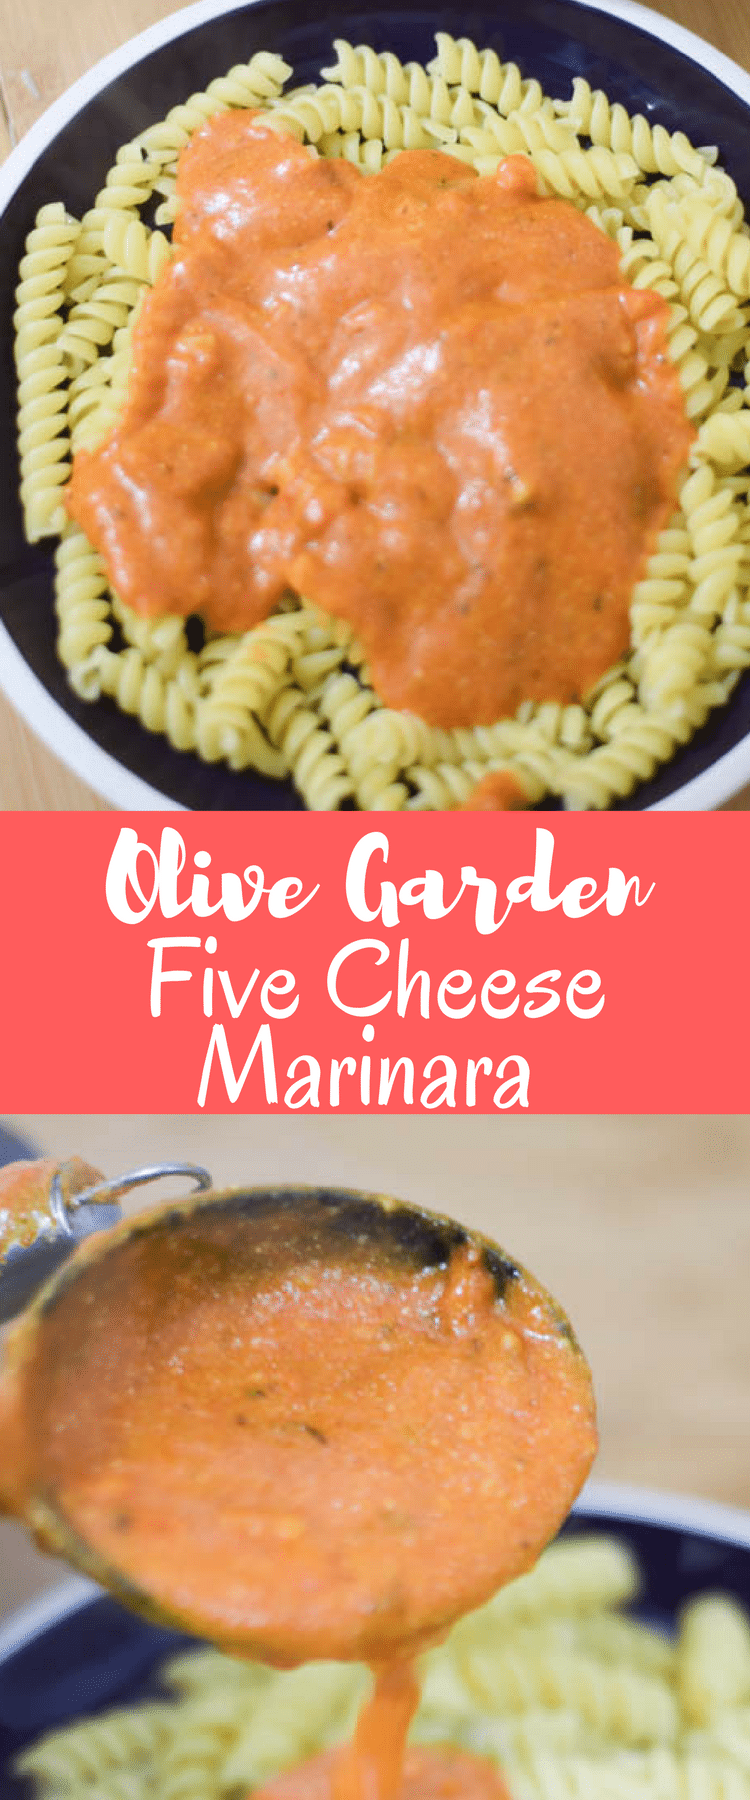 Copycat Olive Garden Five Cheese Marinara Recipe / Olive Garden Copycat Recipe / Olive Garden Marinara / Five Cheese Marinara / 5 Cheese Marinara / Easy marinara via @clarkscondensed